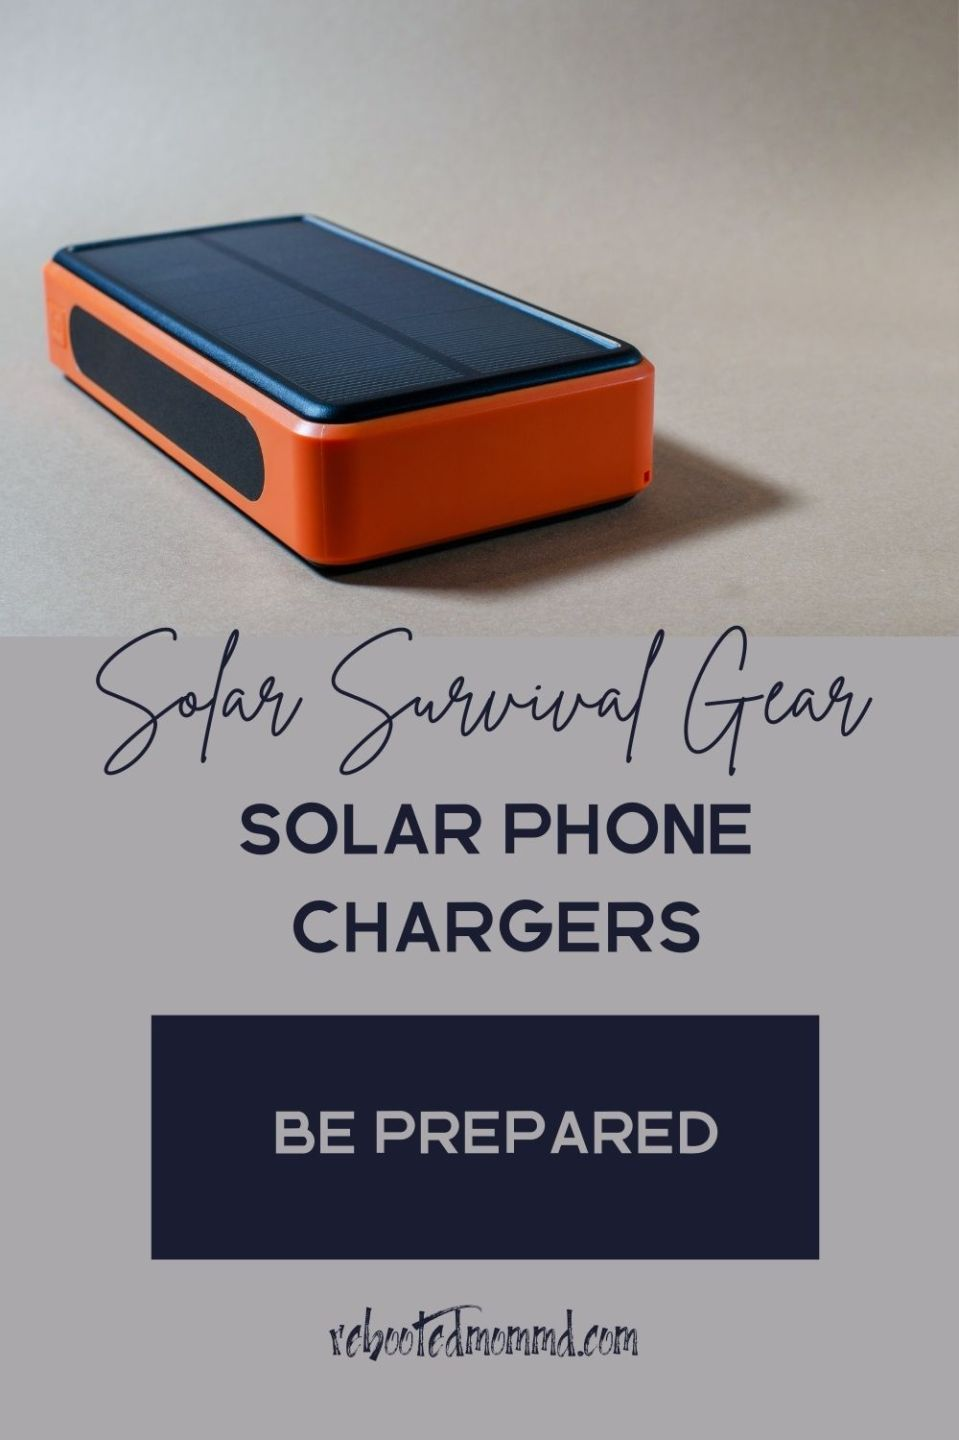 Solar Survival Gear Every House Should Have: Solar Phone Chargers